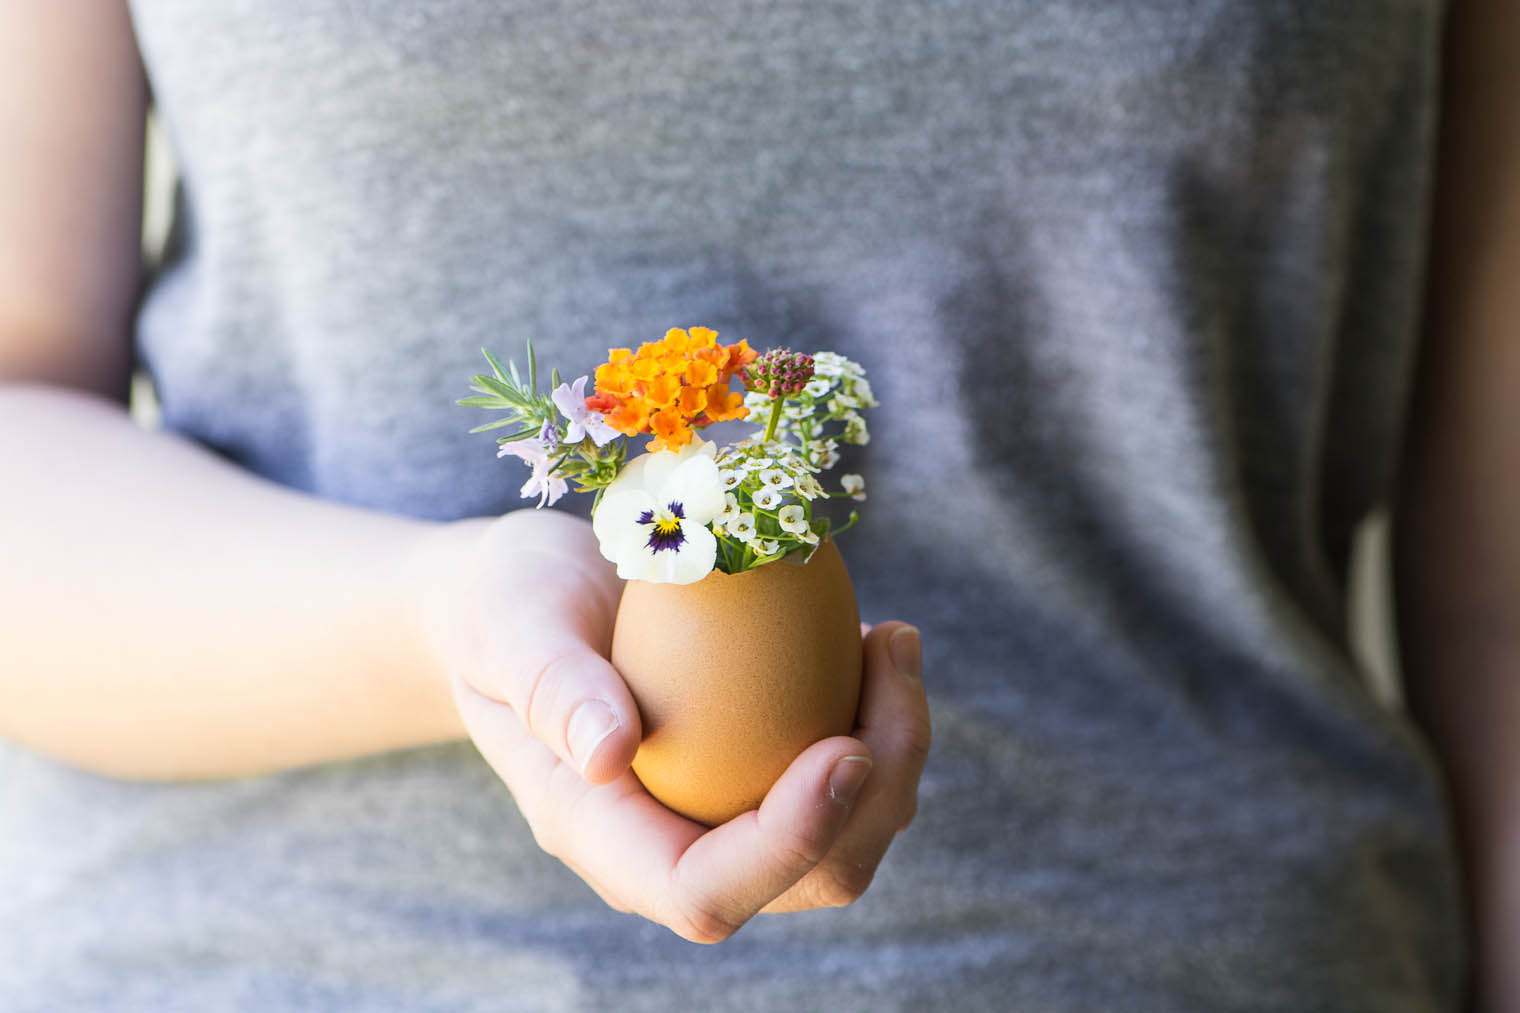 A hand holding an eggshell vase with flowers.